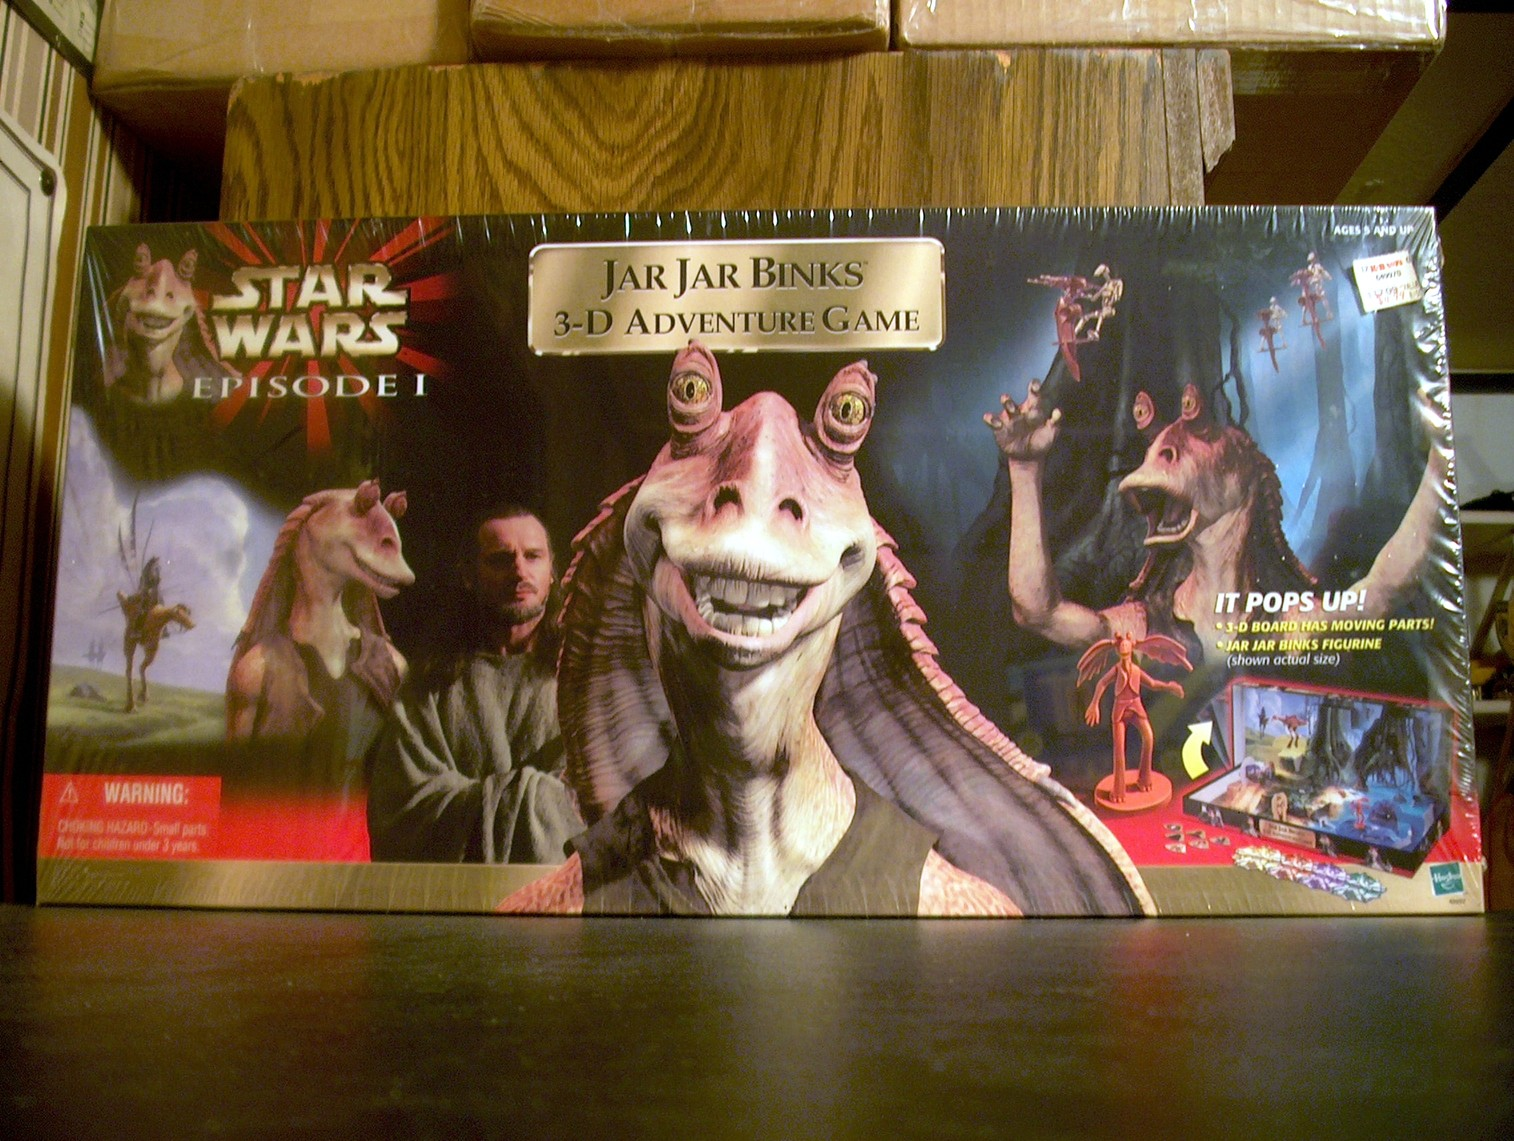 Jar Jar Binks 3-D Adventure Game